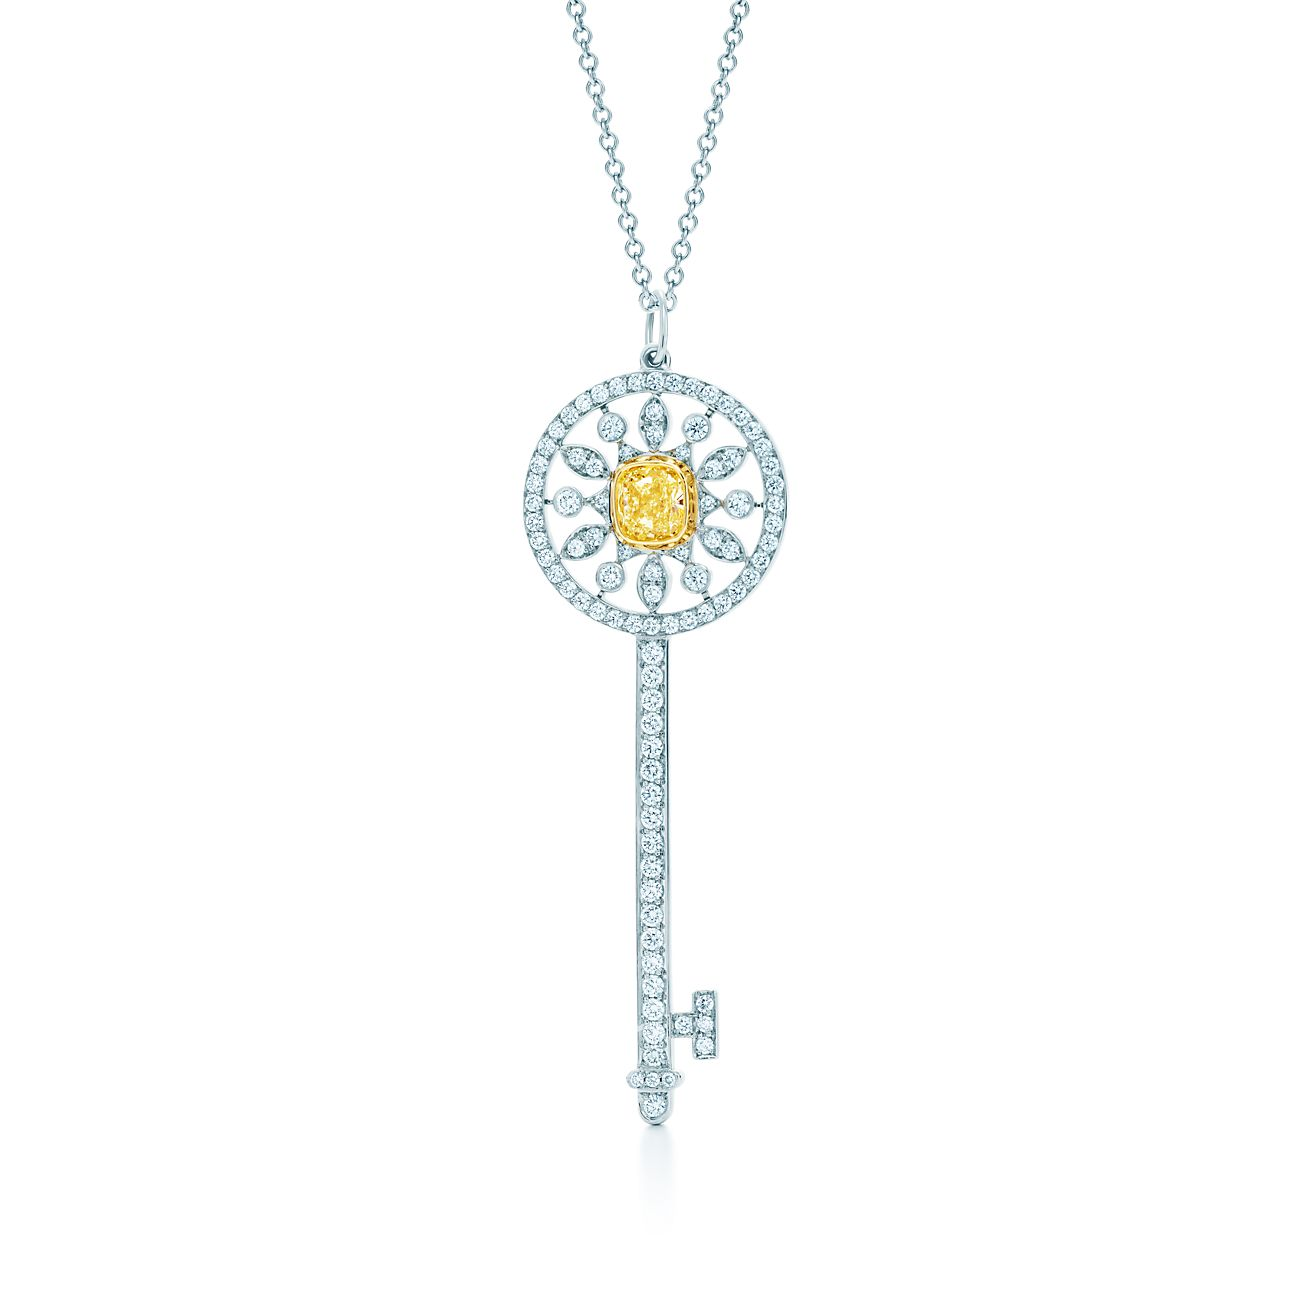 Tiffany keys star key pendant of yellow and white diamonds in tiffany keysstar key pendant aloadofball Images